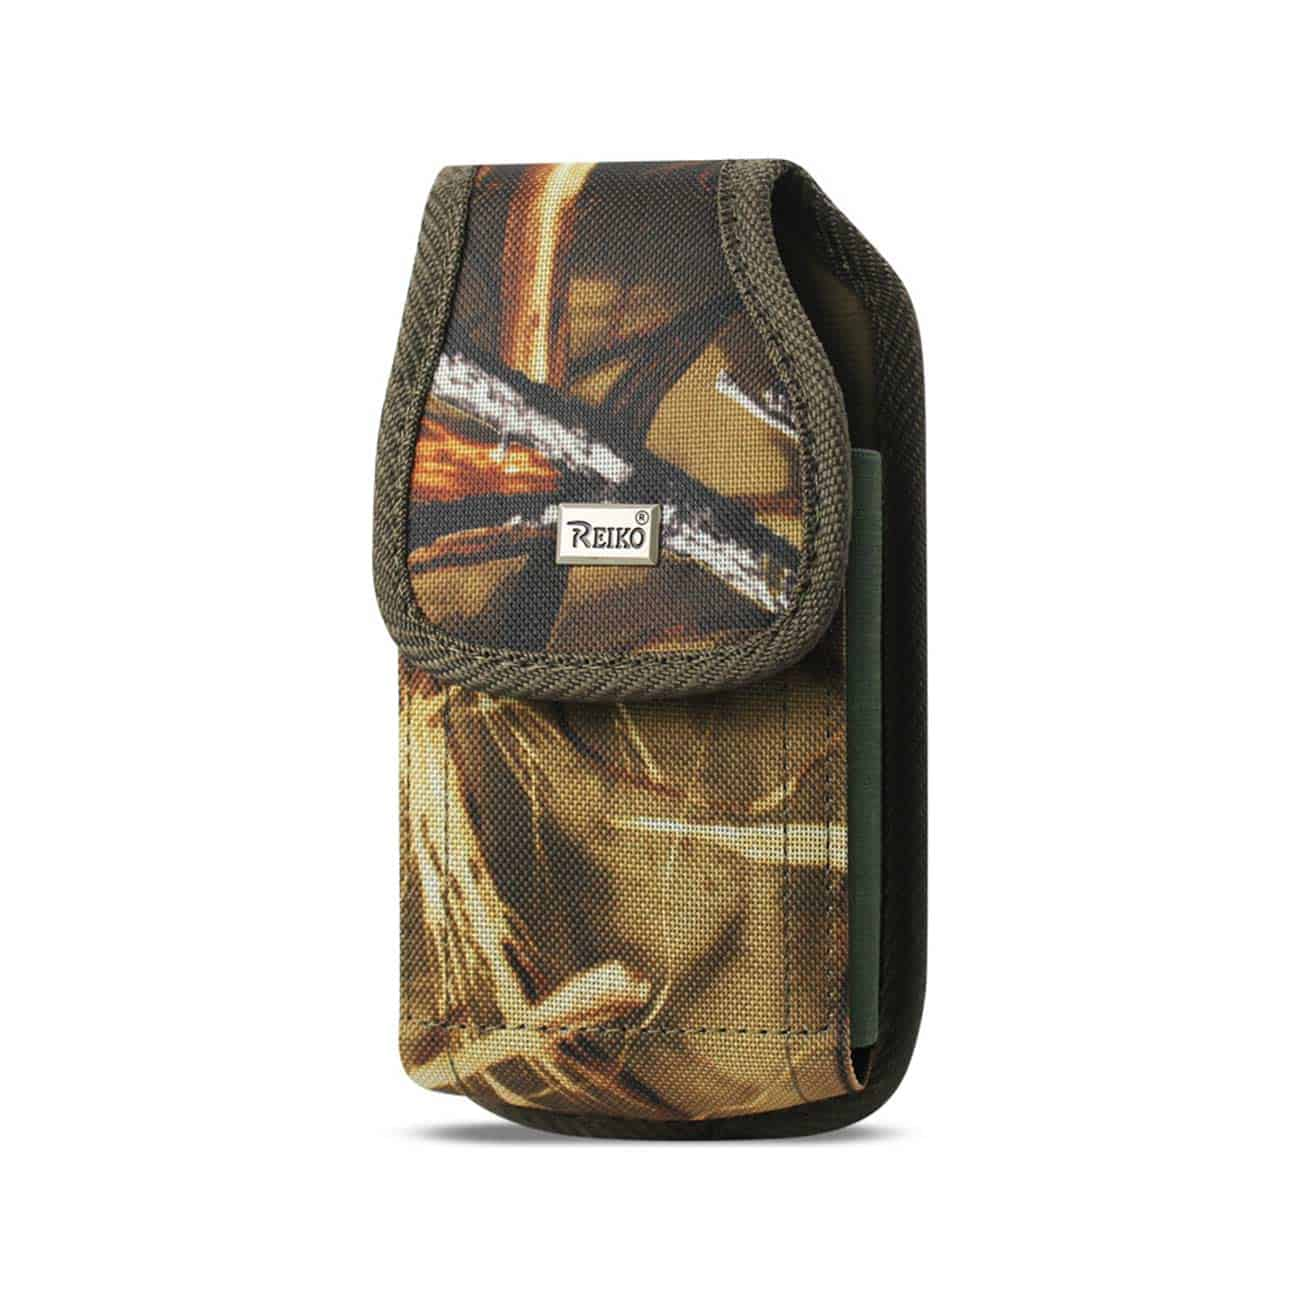 Vertical Rugged Pouch With Buckle Clip In Camouflage (5.3X2.7X0.7 Inches)